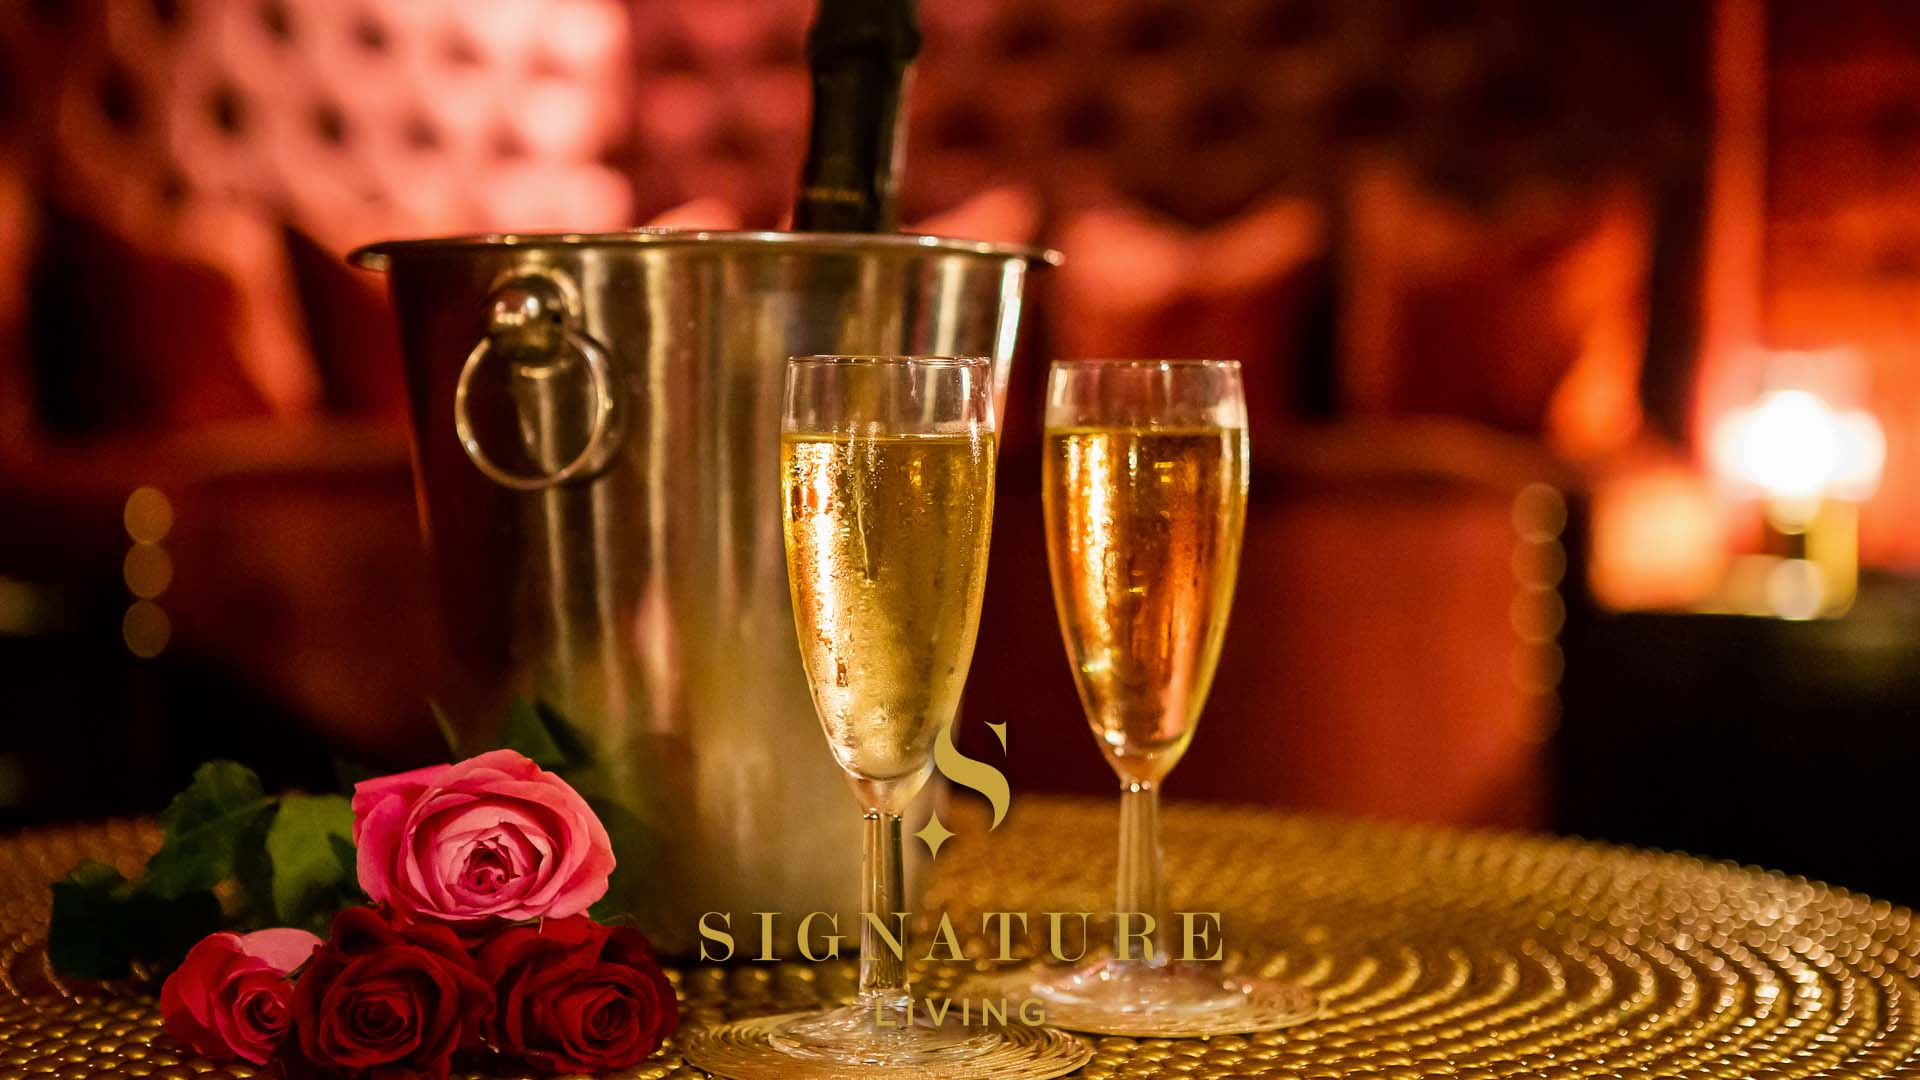 Rainhill Hall Couples Stay, Dine and Spa by Signature Living